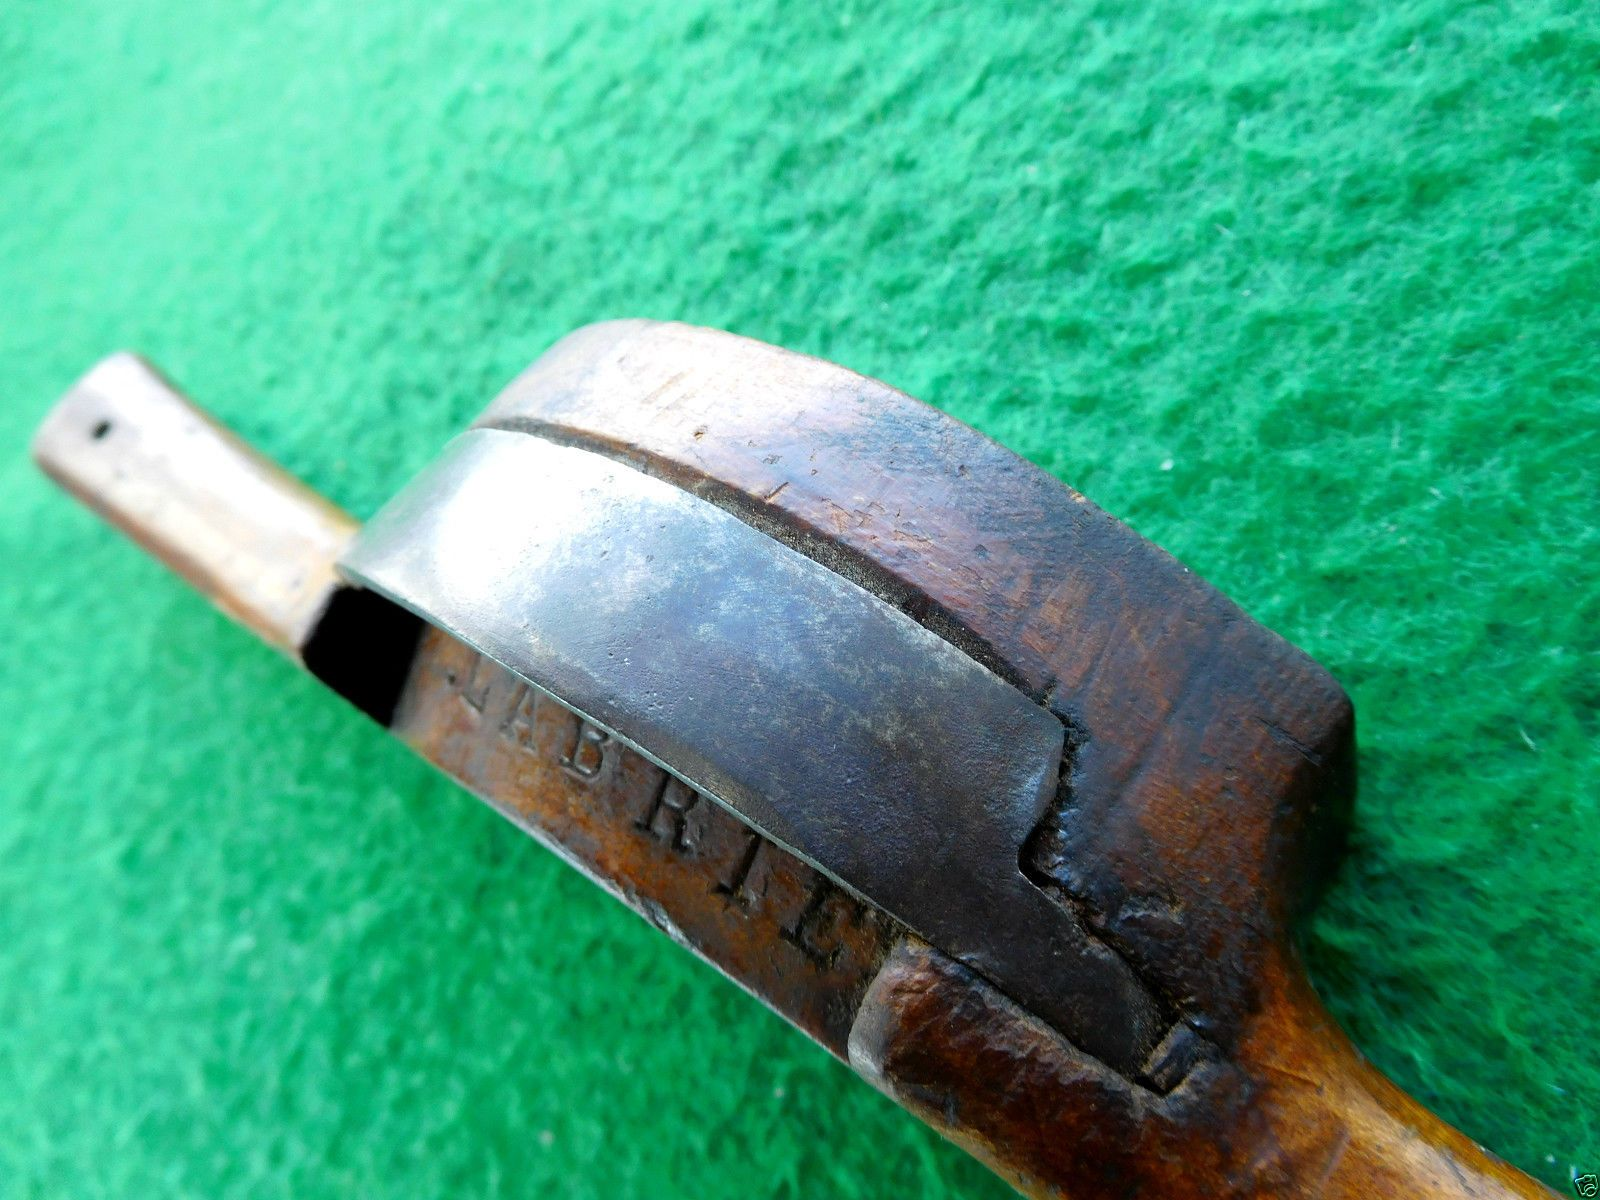 Details about Chairmakers Travisher spokeshave type tool